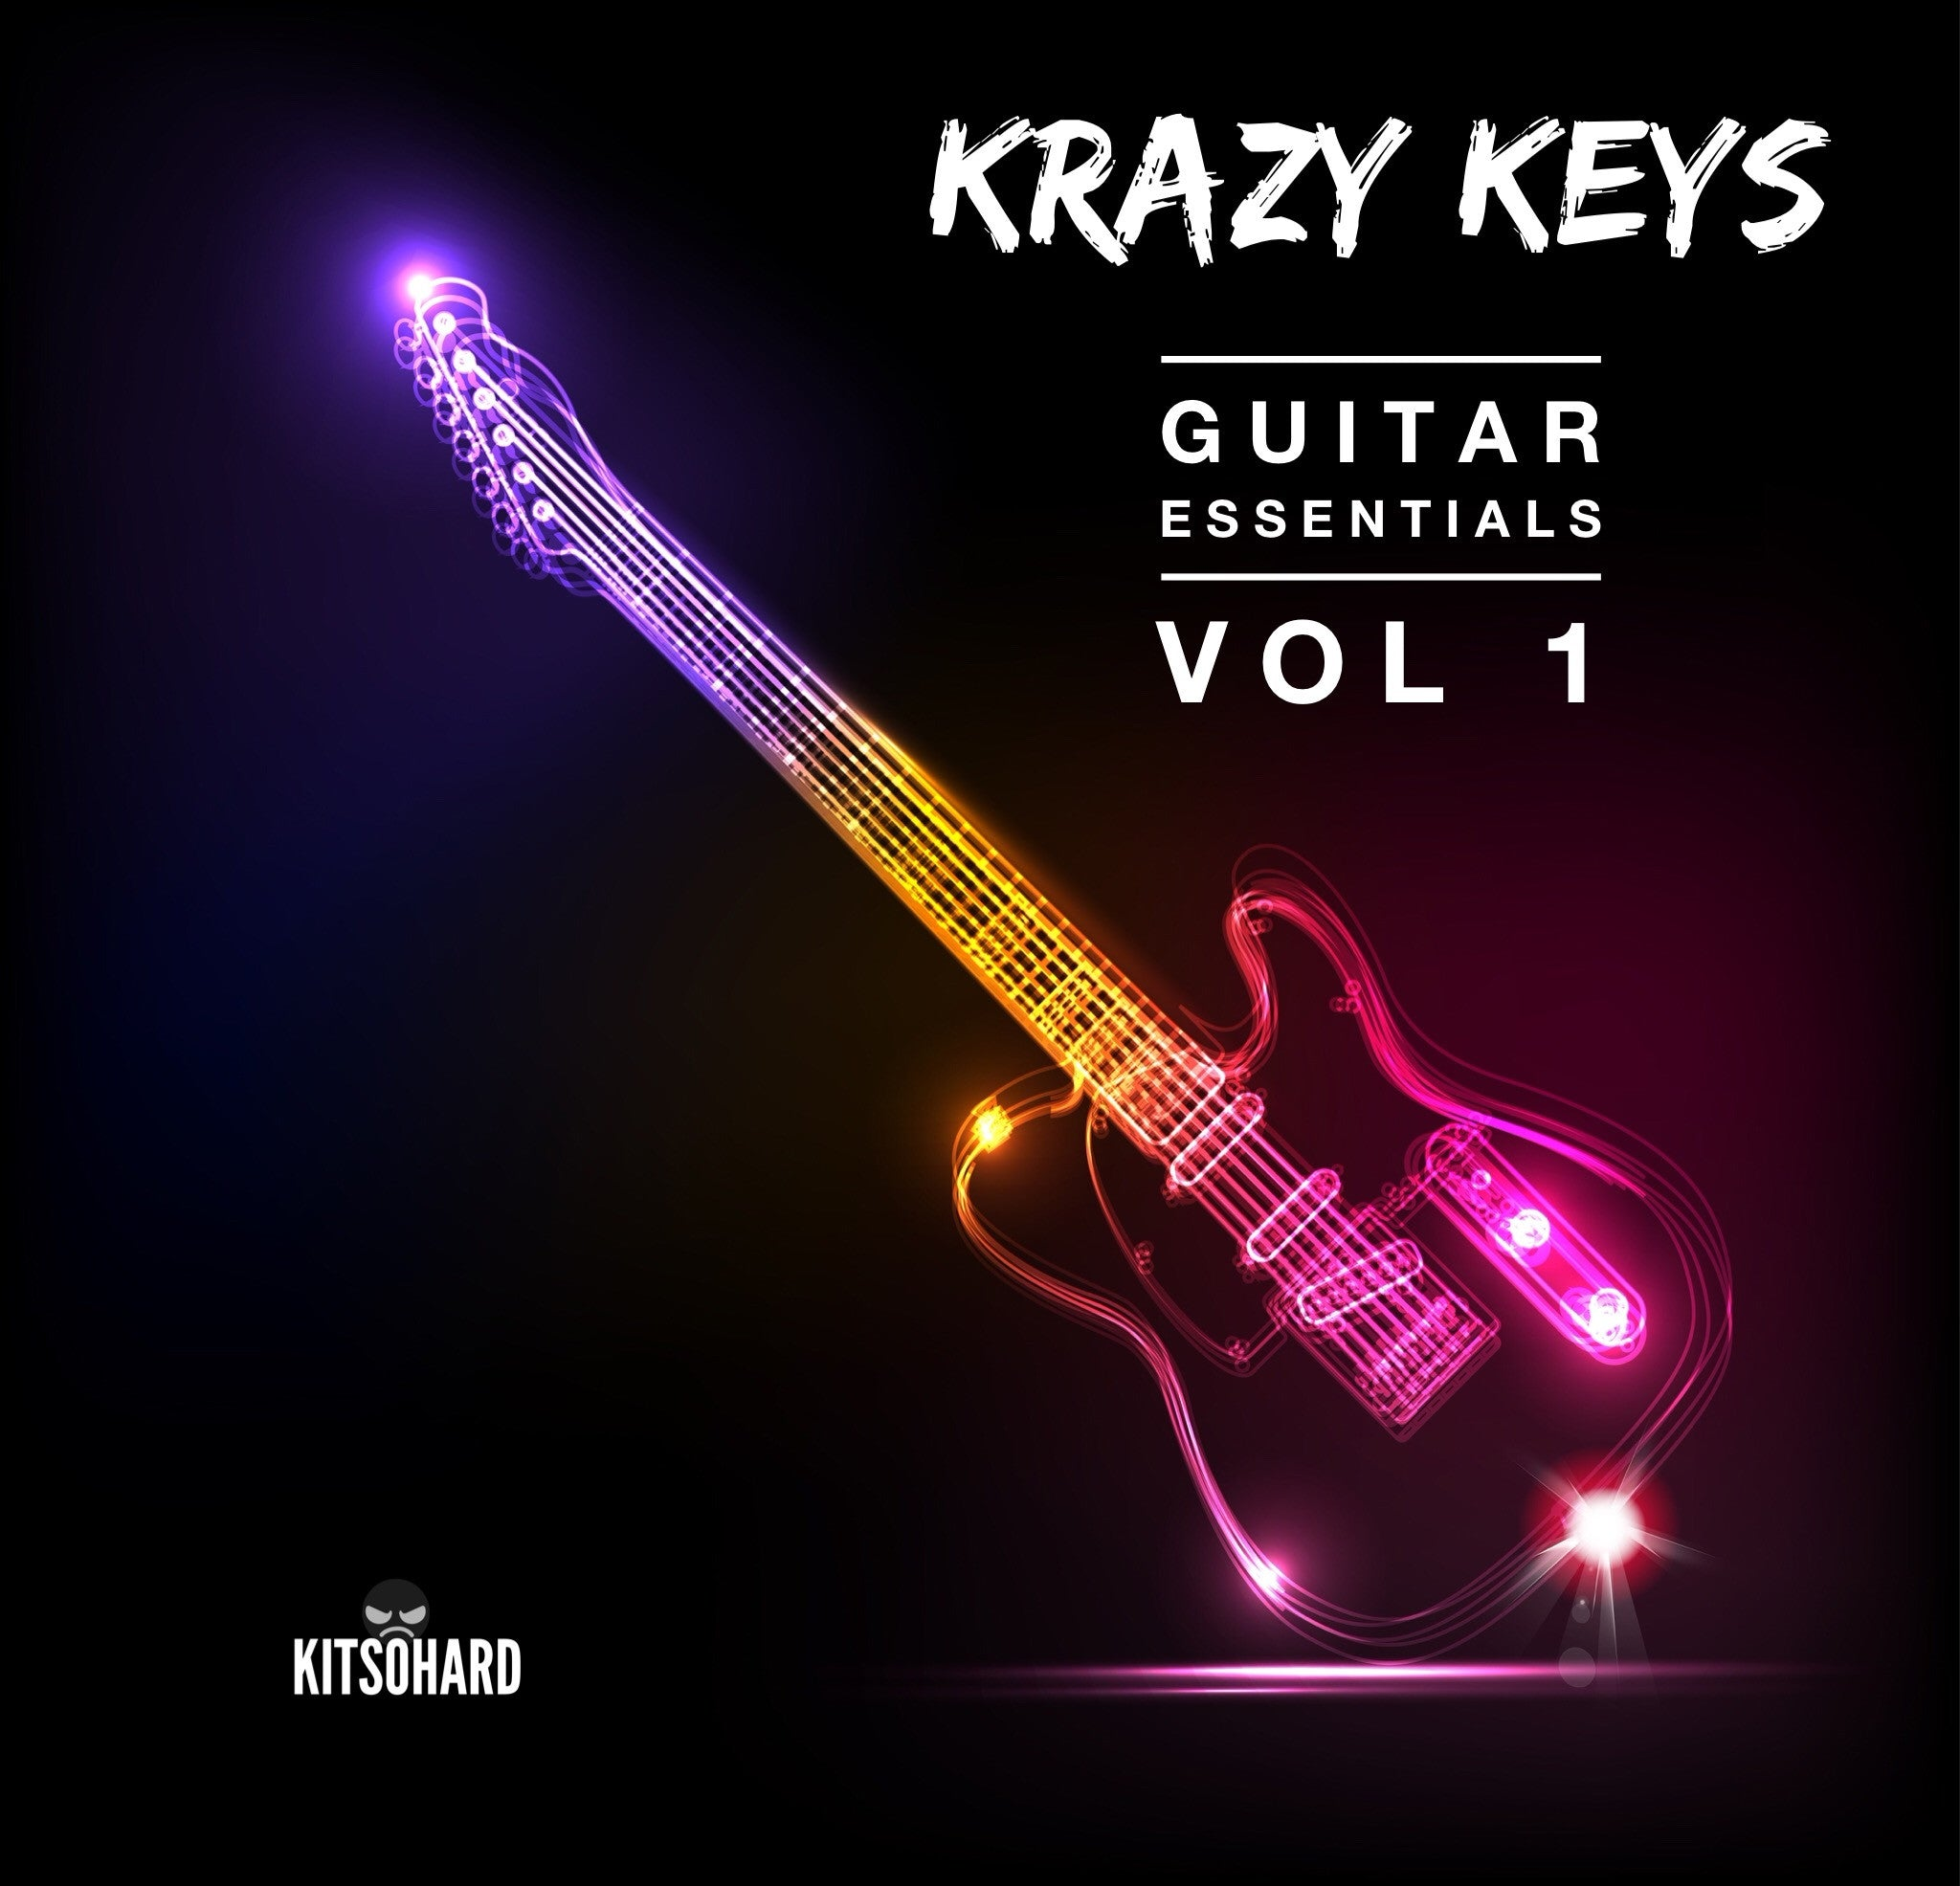 Guitar Essentials Vol 1